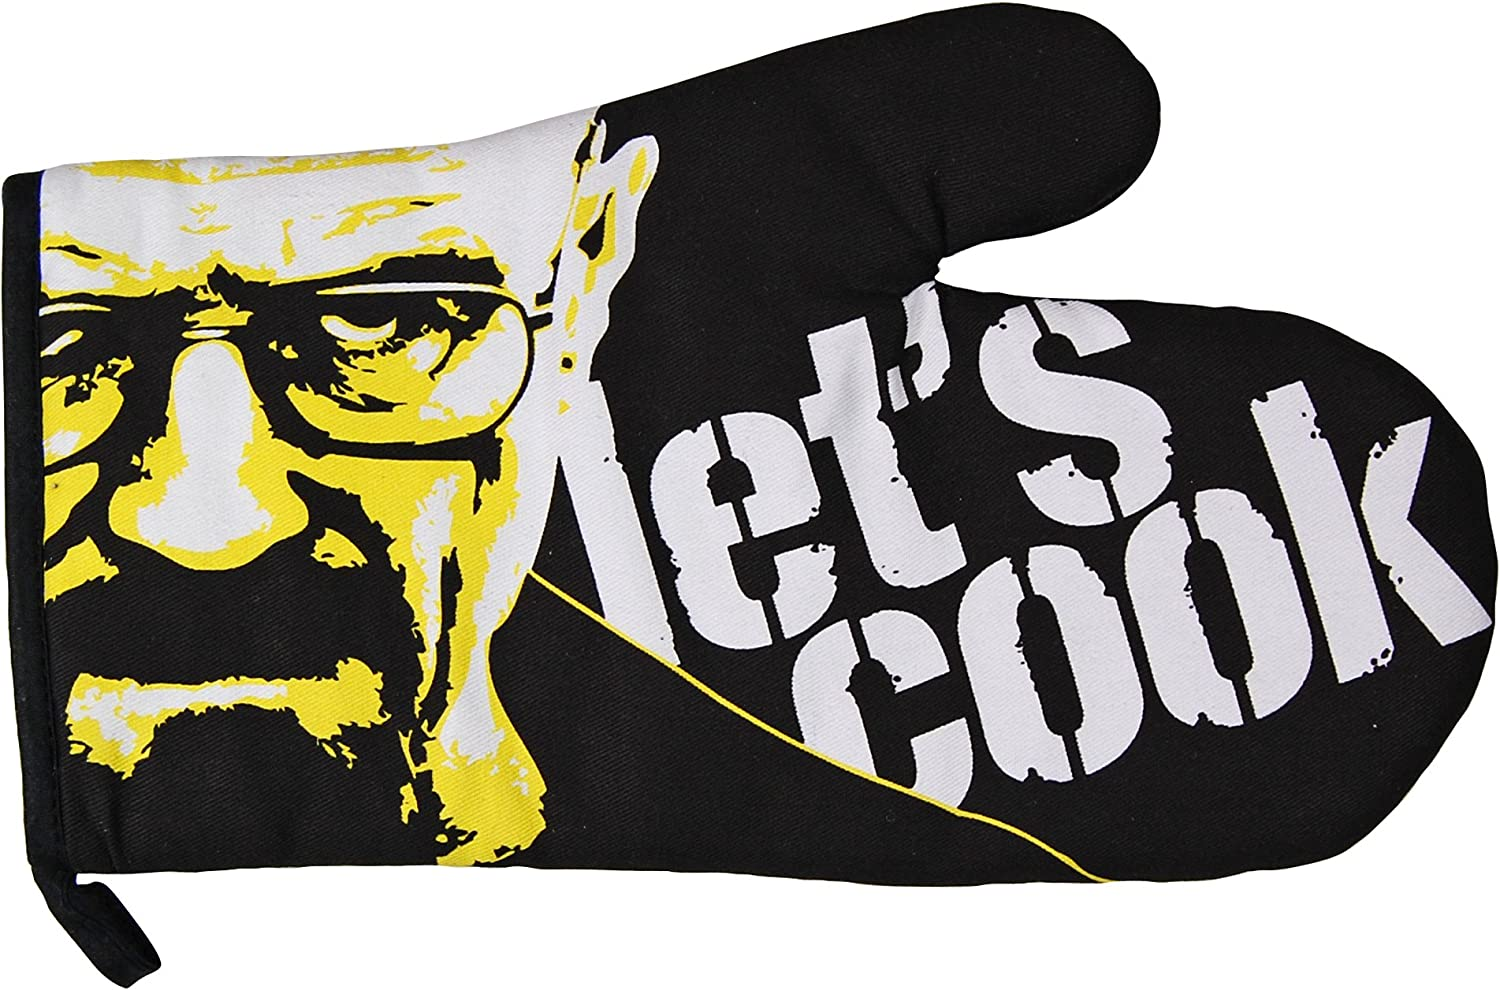 Breaking Bad Let's Cook Oven Glove. Cool Funky Novelty Kitchen and Cooking Tool